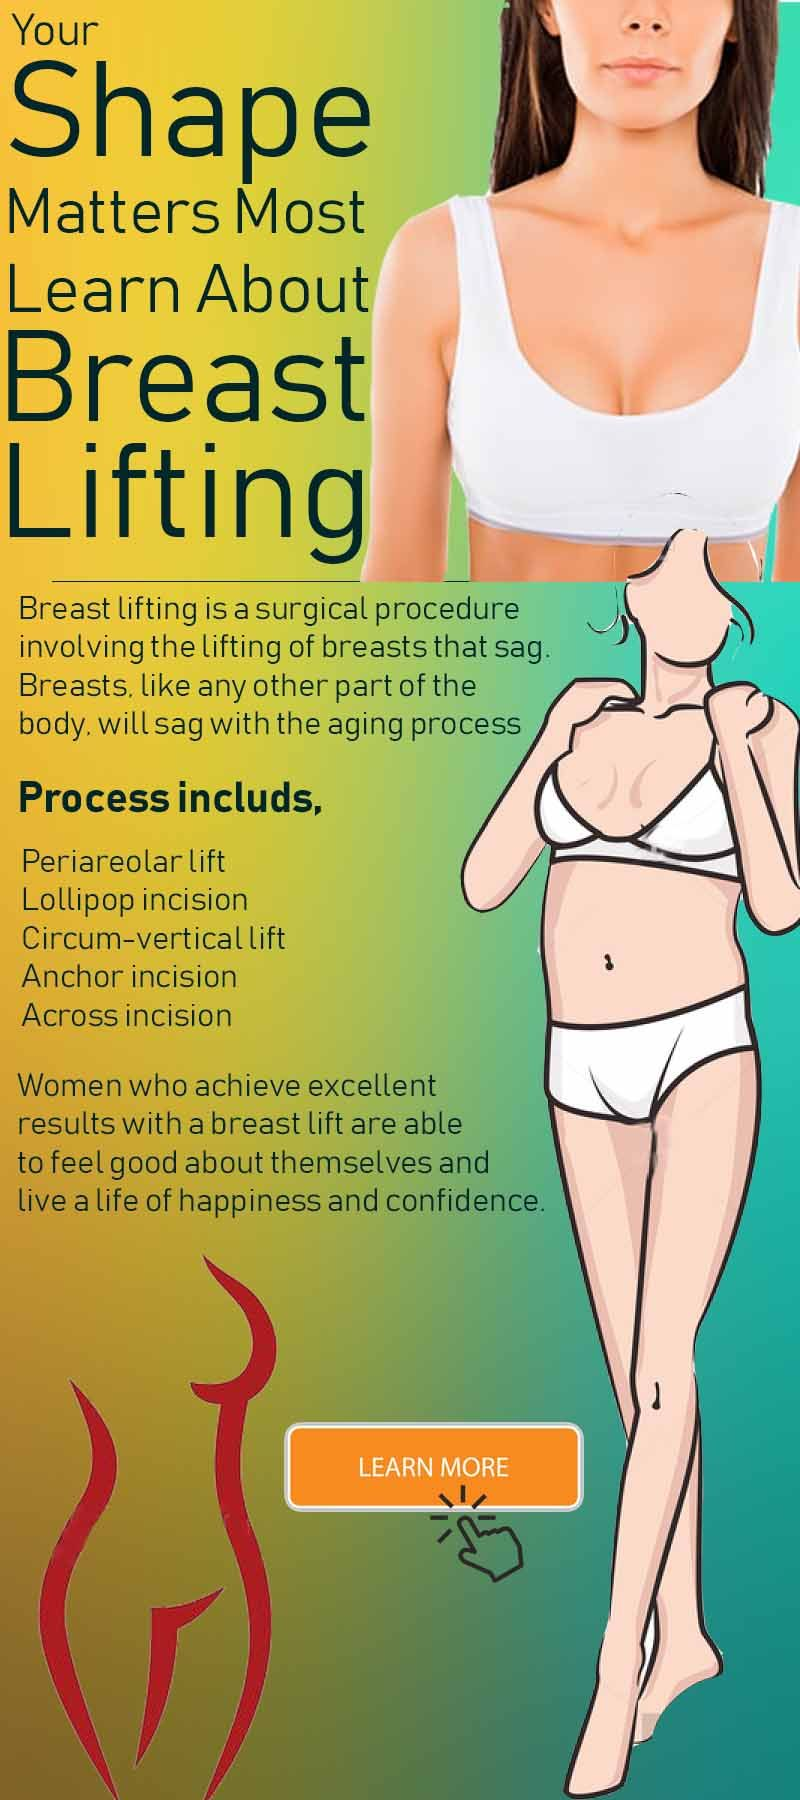 Breast Lift New Jersey: Breast lift is an ideal surgery to firm up ...